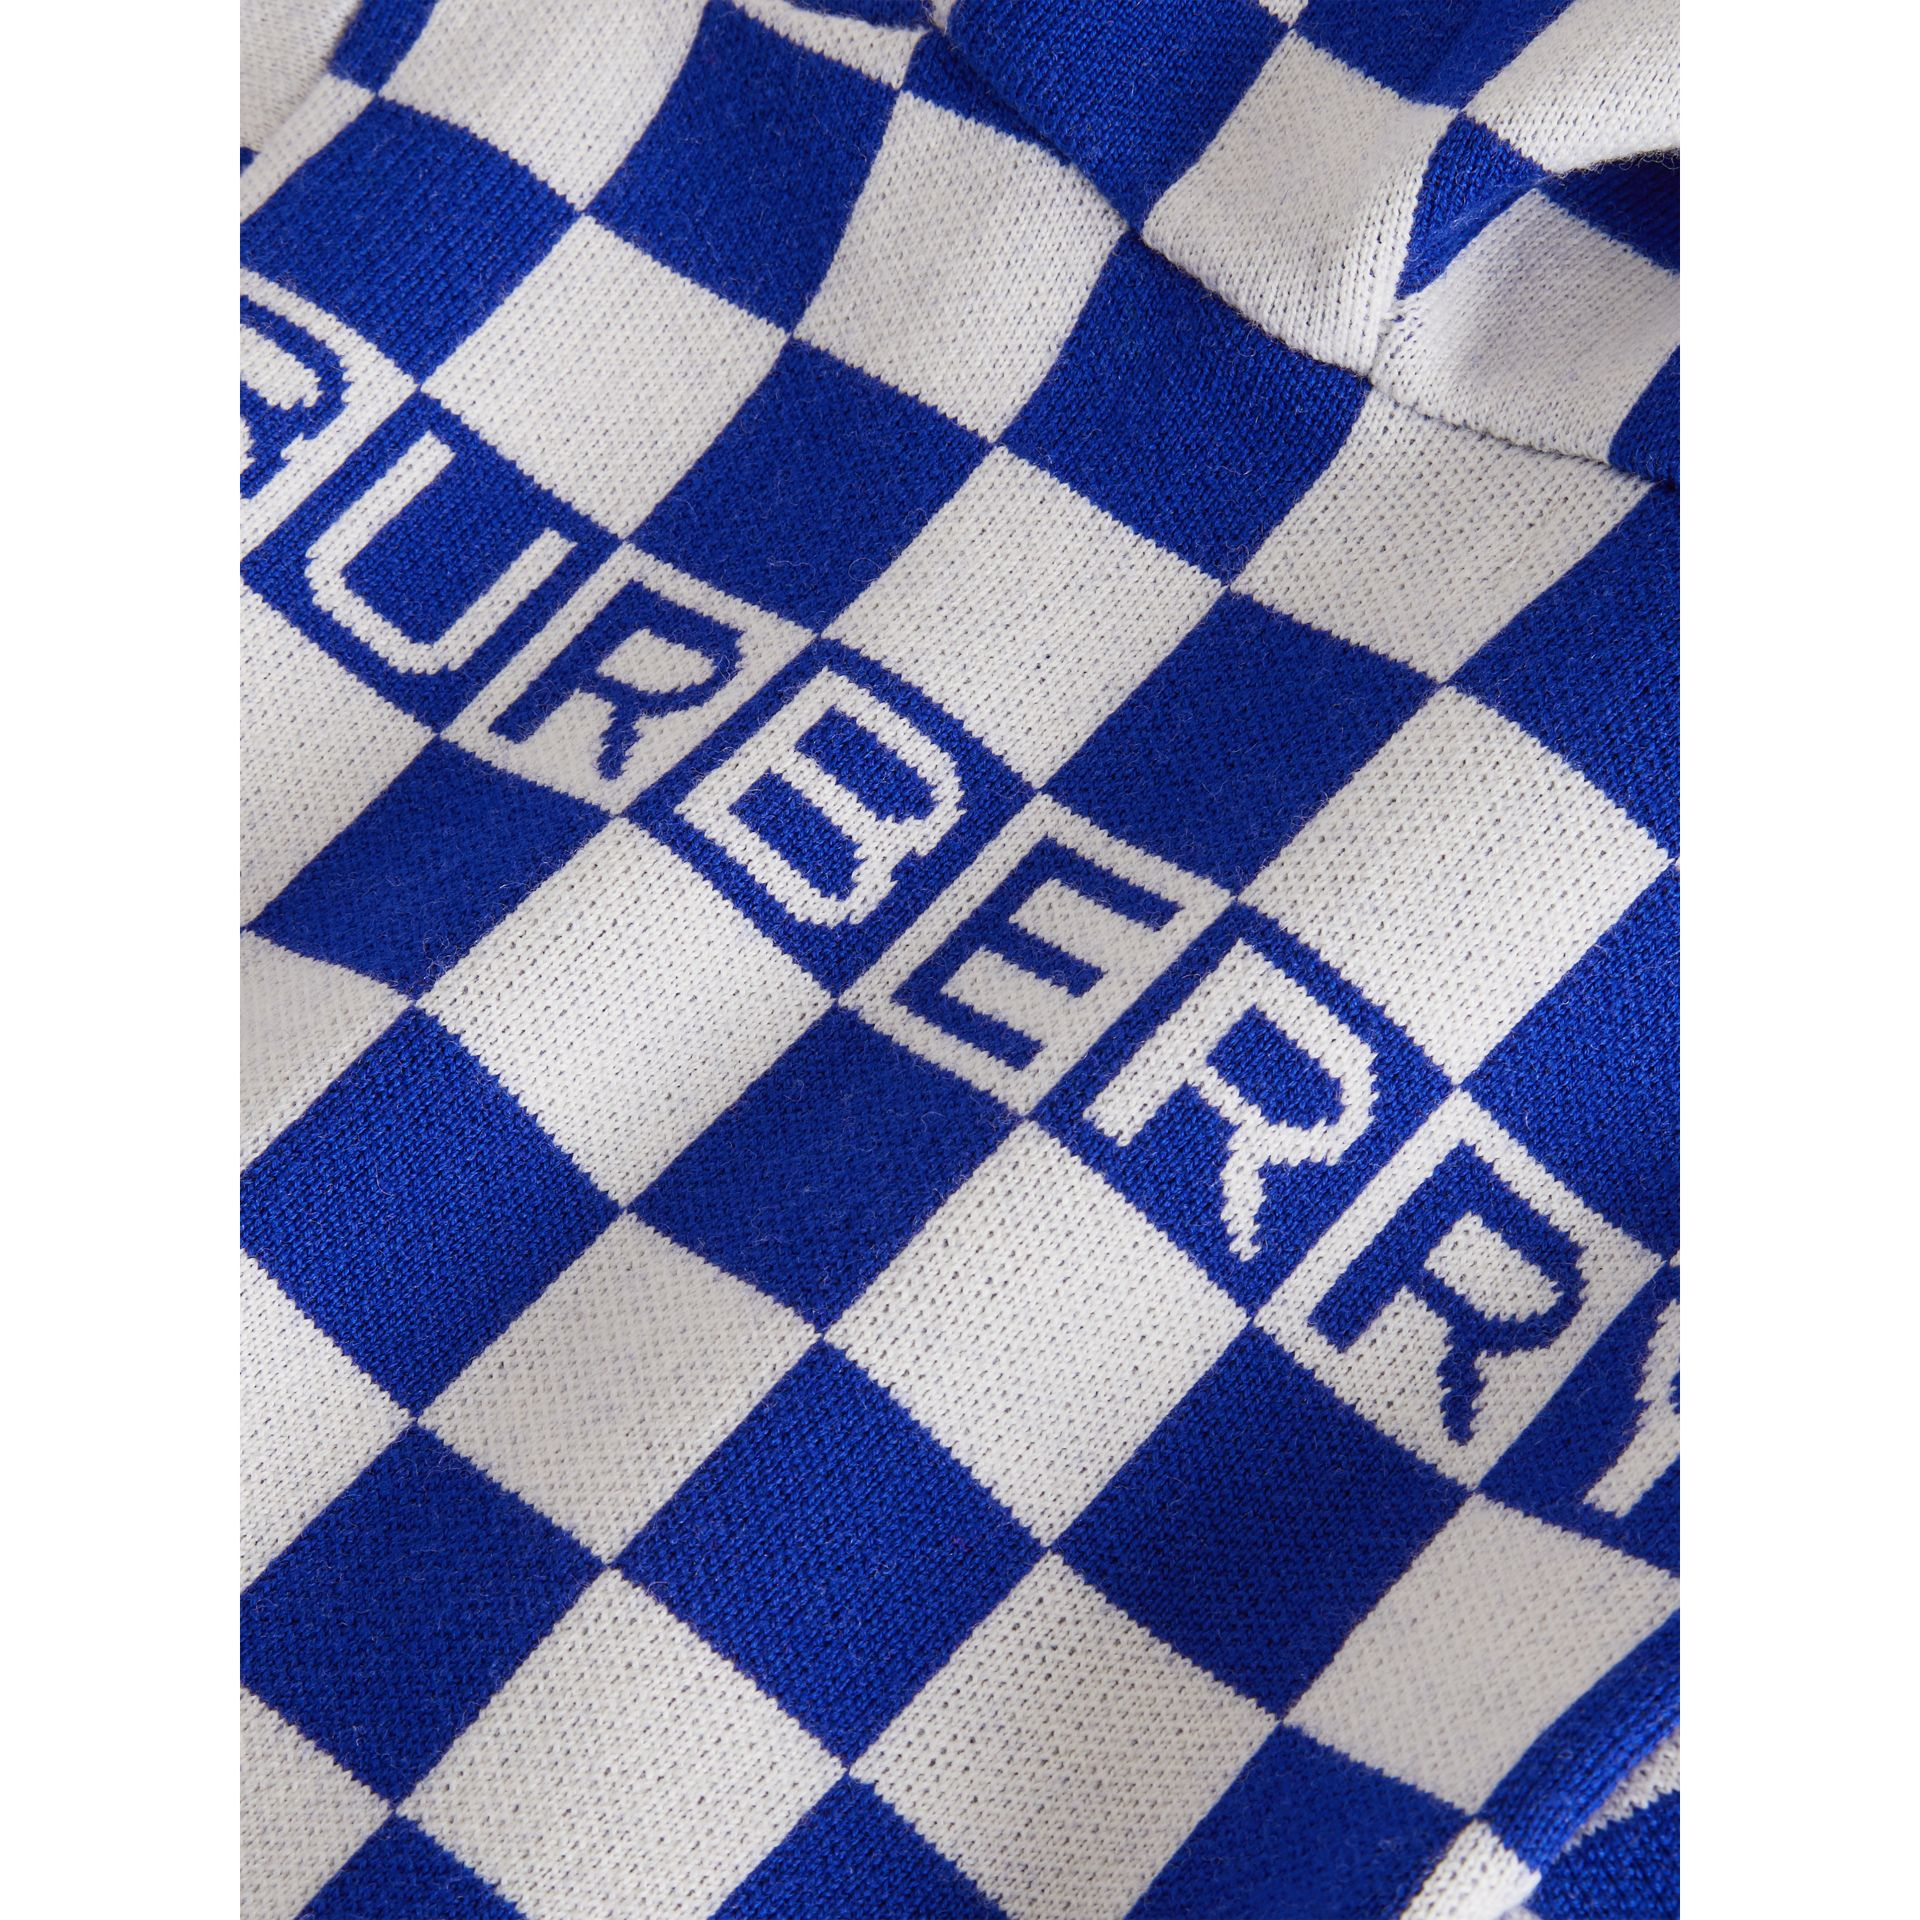 Chequer Merino Wool Hooded Top in Cobalt Blue - Children | Burberry - gallery image 1